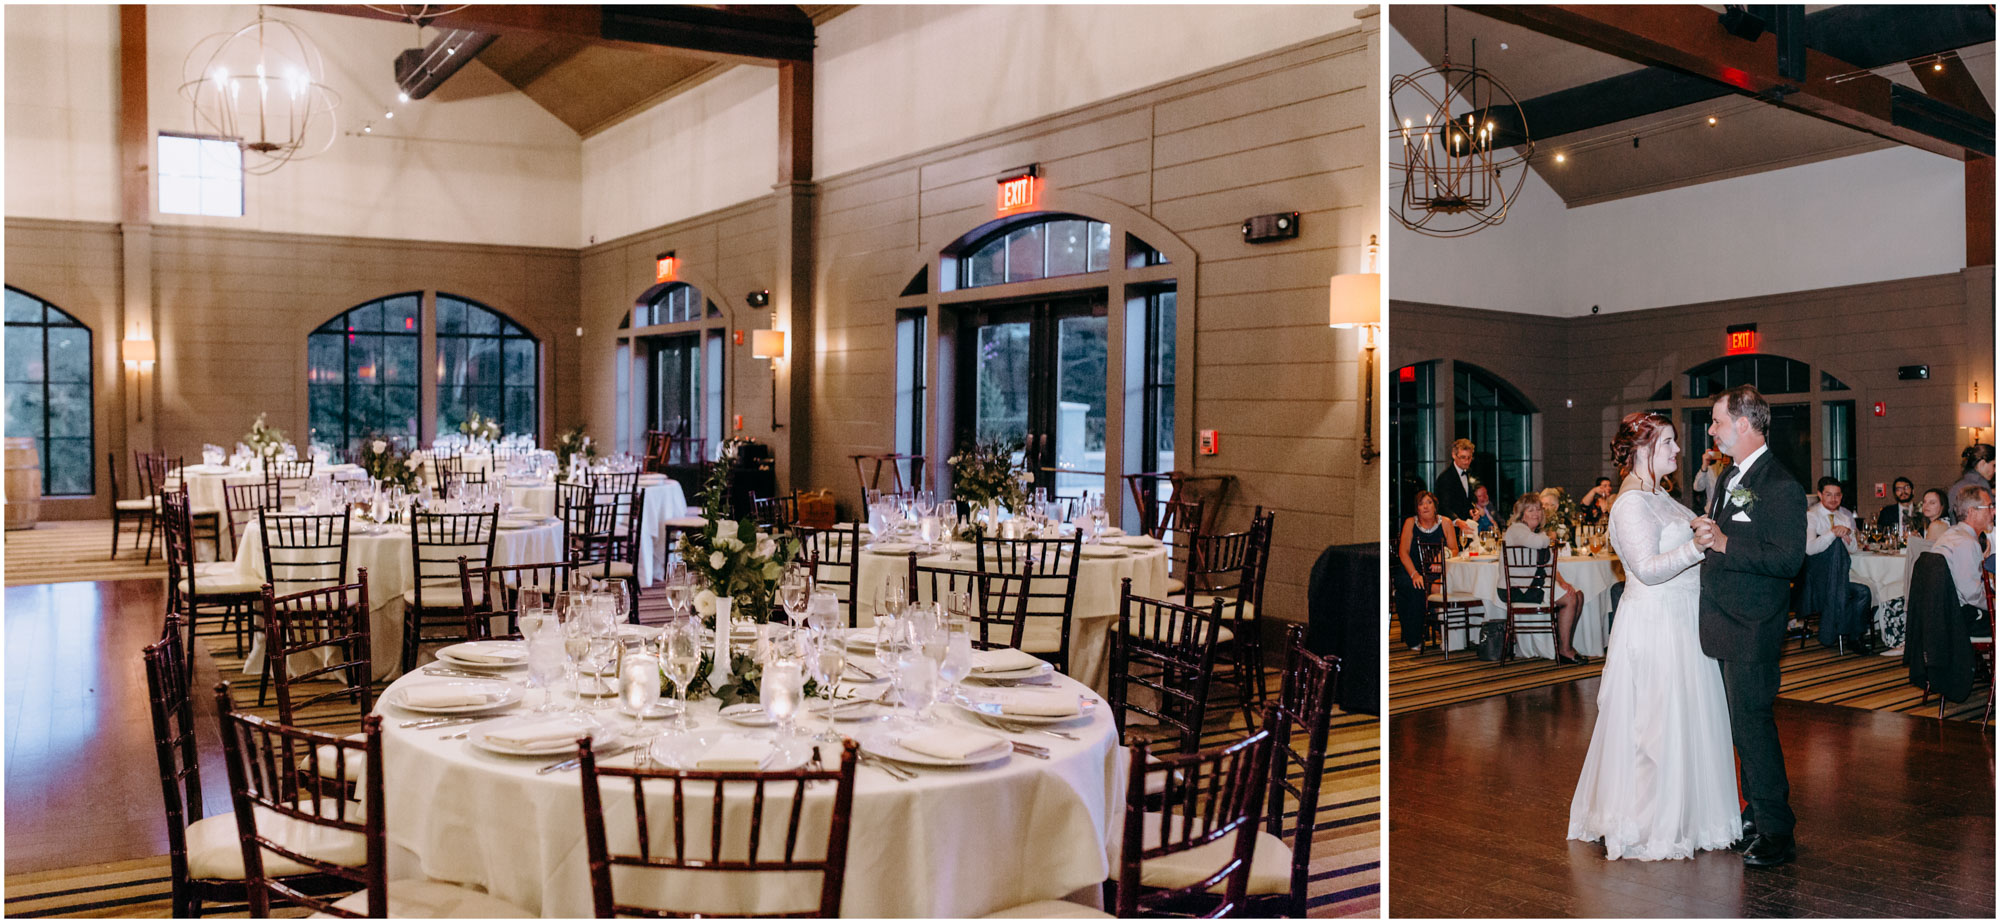 Reception venue - by Ashleigh Laureen Photography at LaBelle Winery in Amherst, New Hampshire